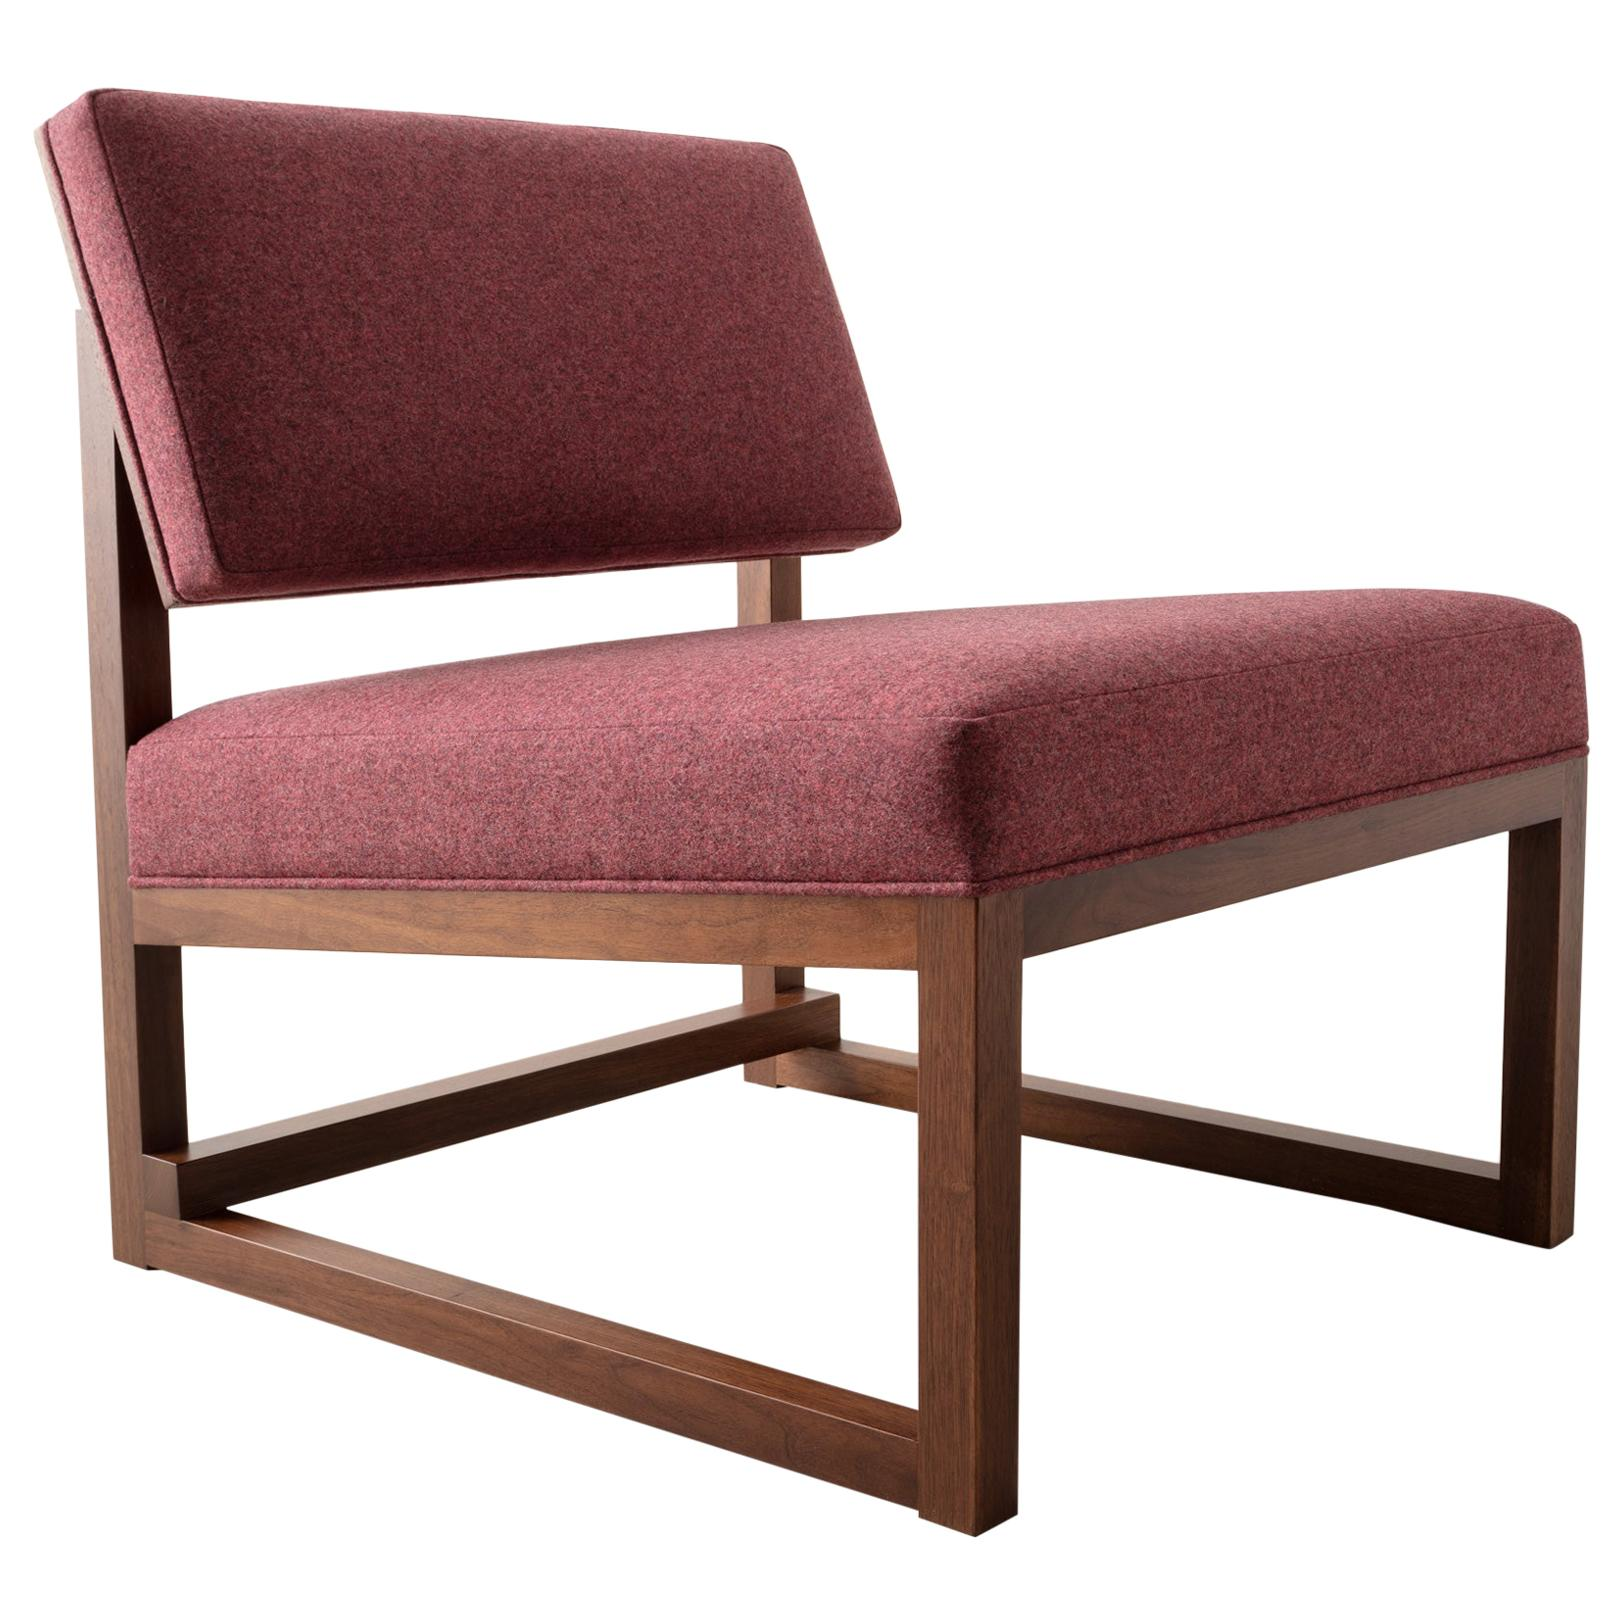 SQ Lounge Chair in Walnut, Upholstery in Wool, Bouclé or COM, Handmade in USA